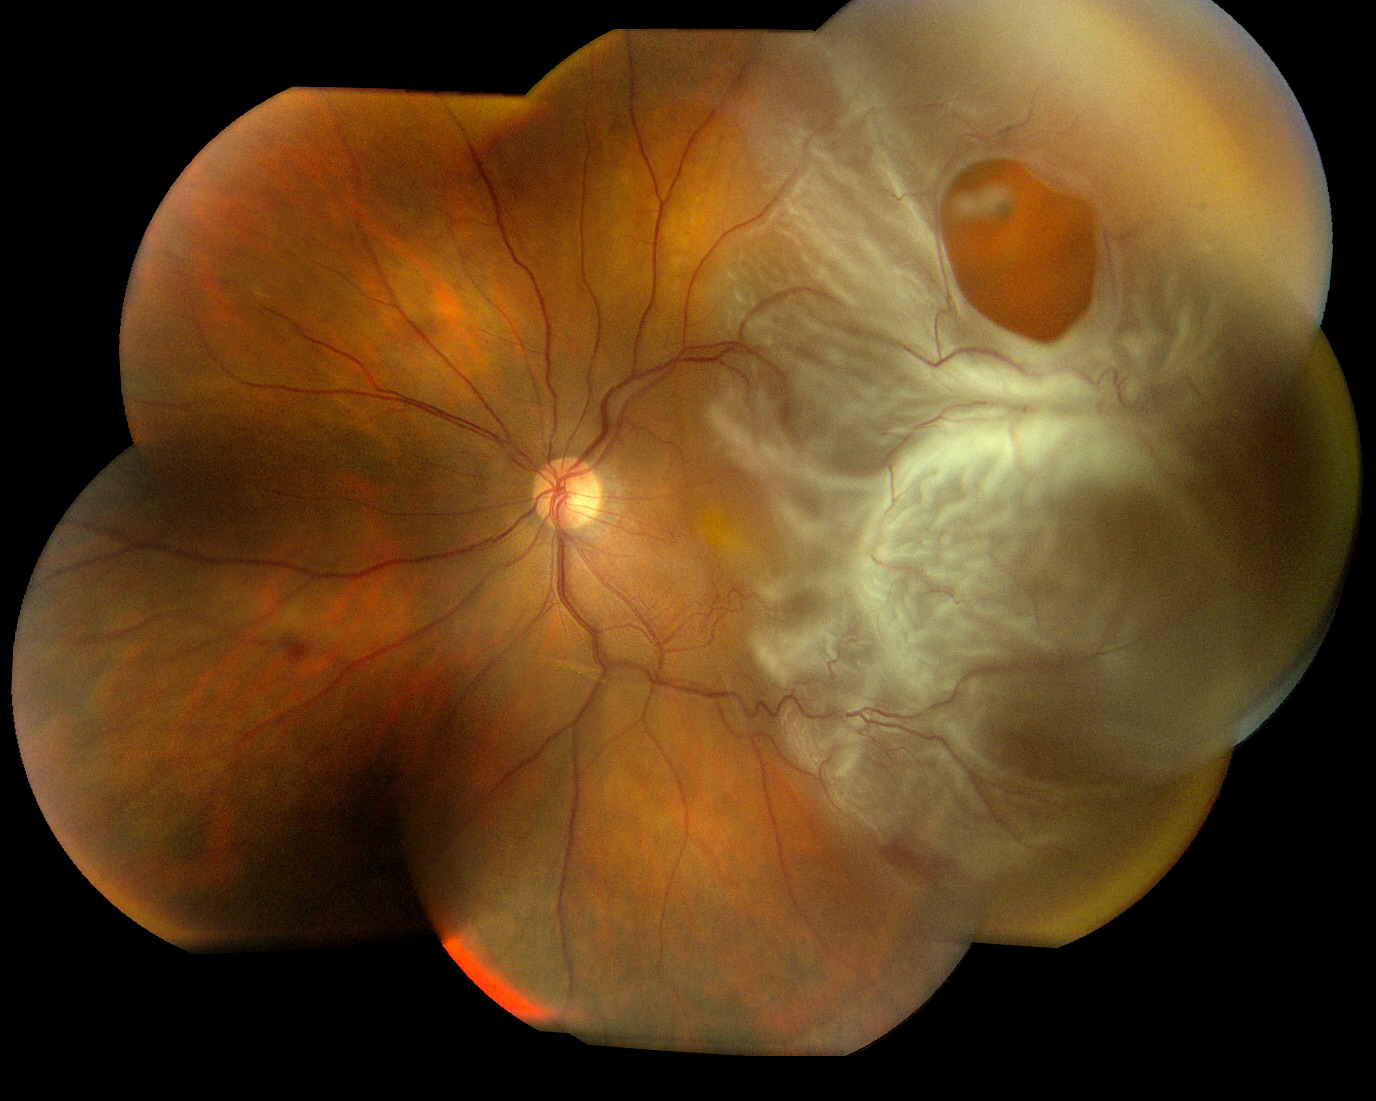 Vitrectomy - The American Society of Retina Specialists - The